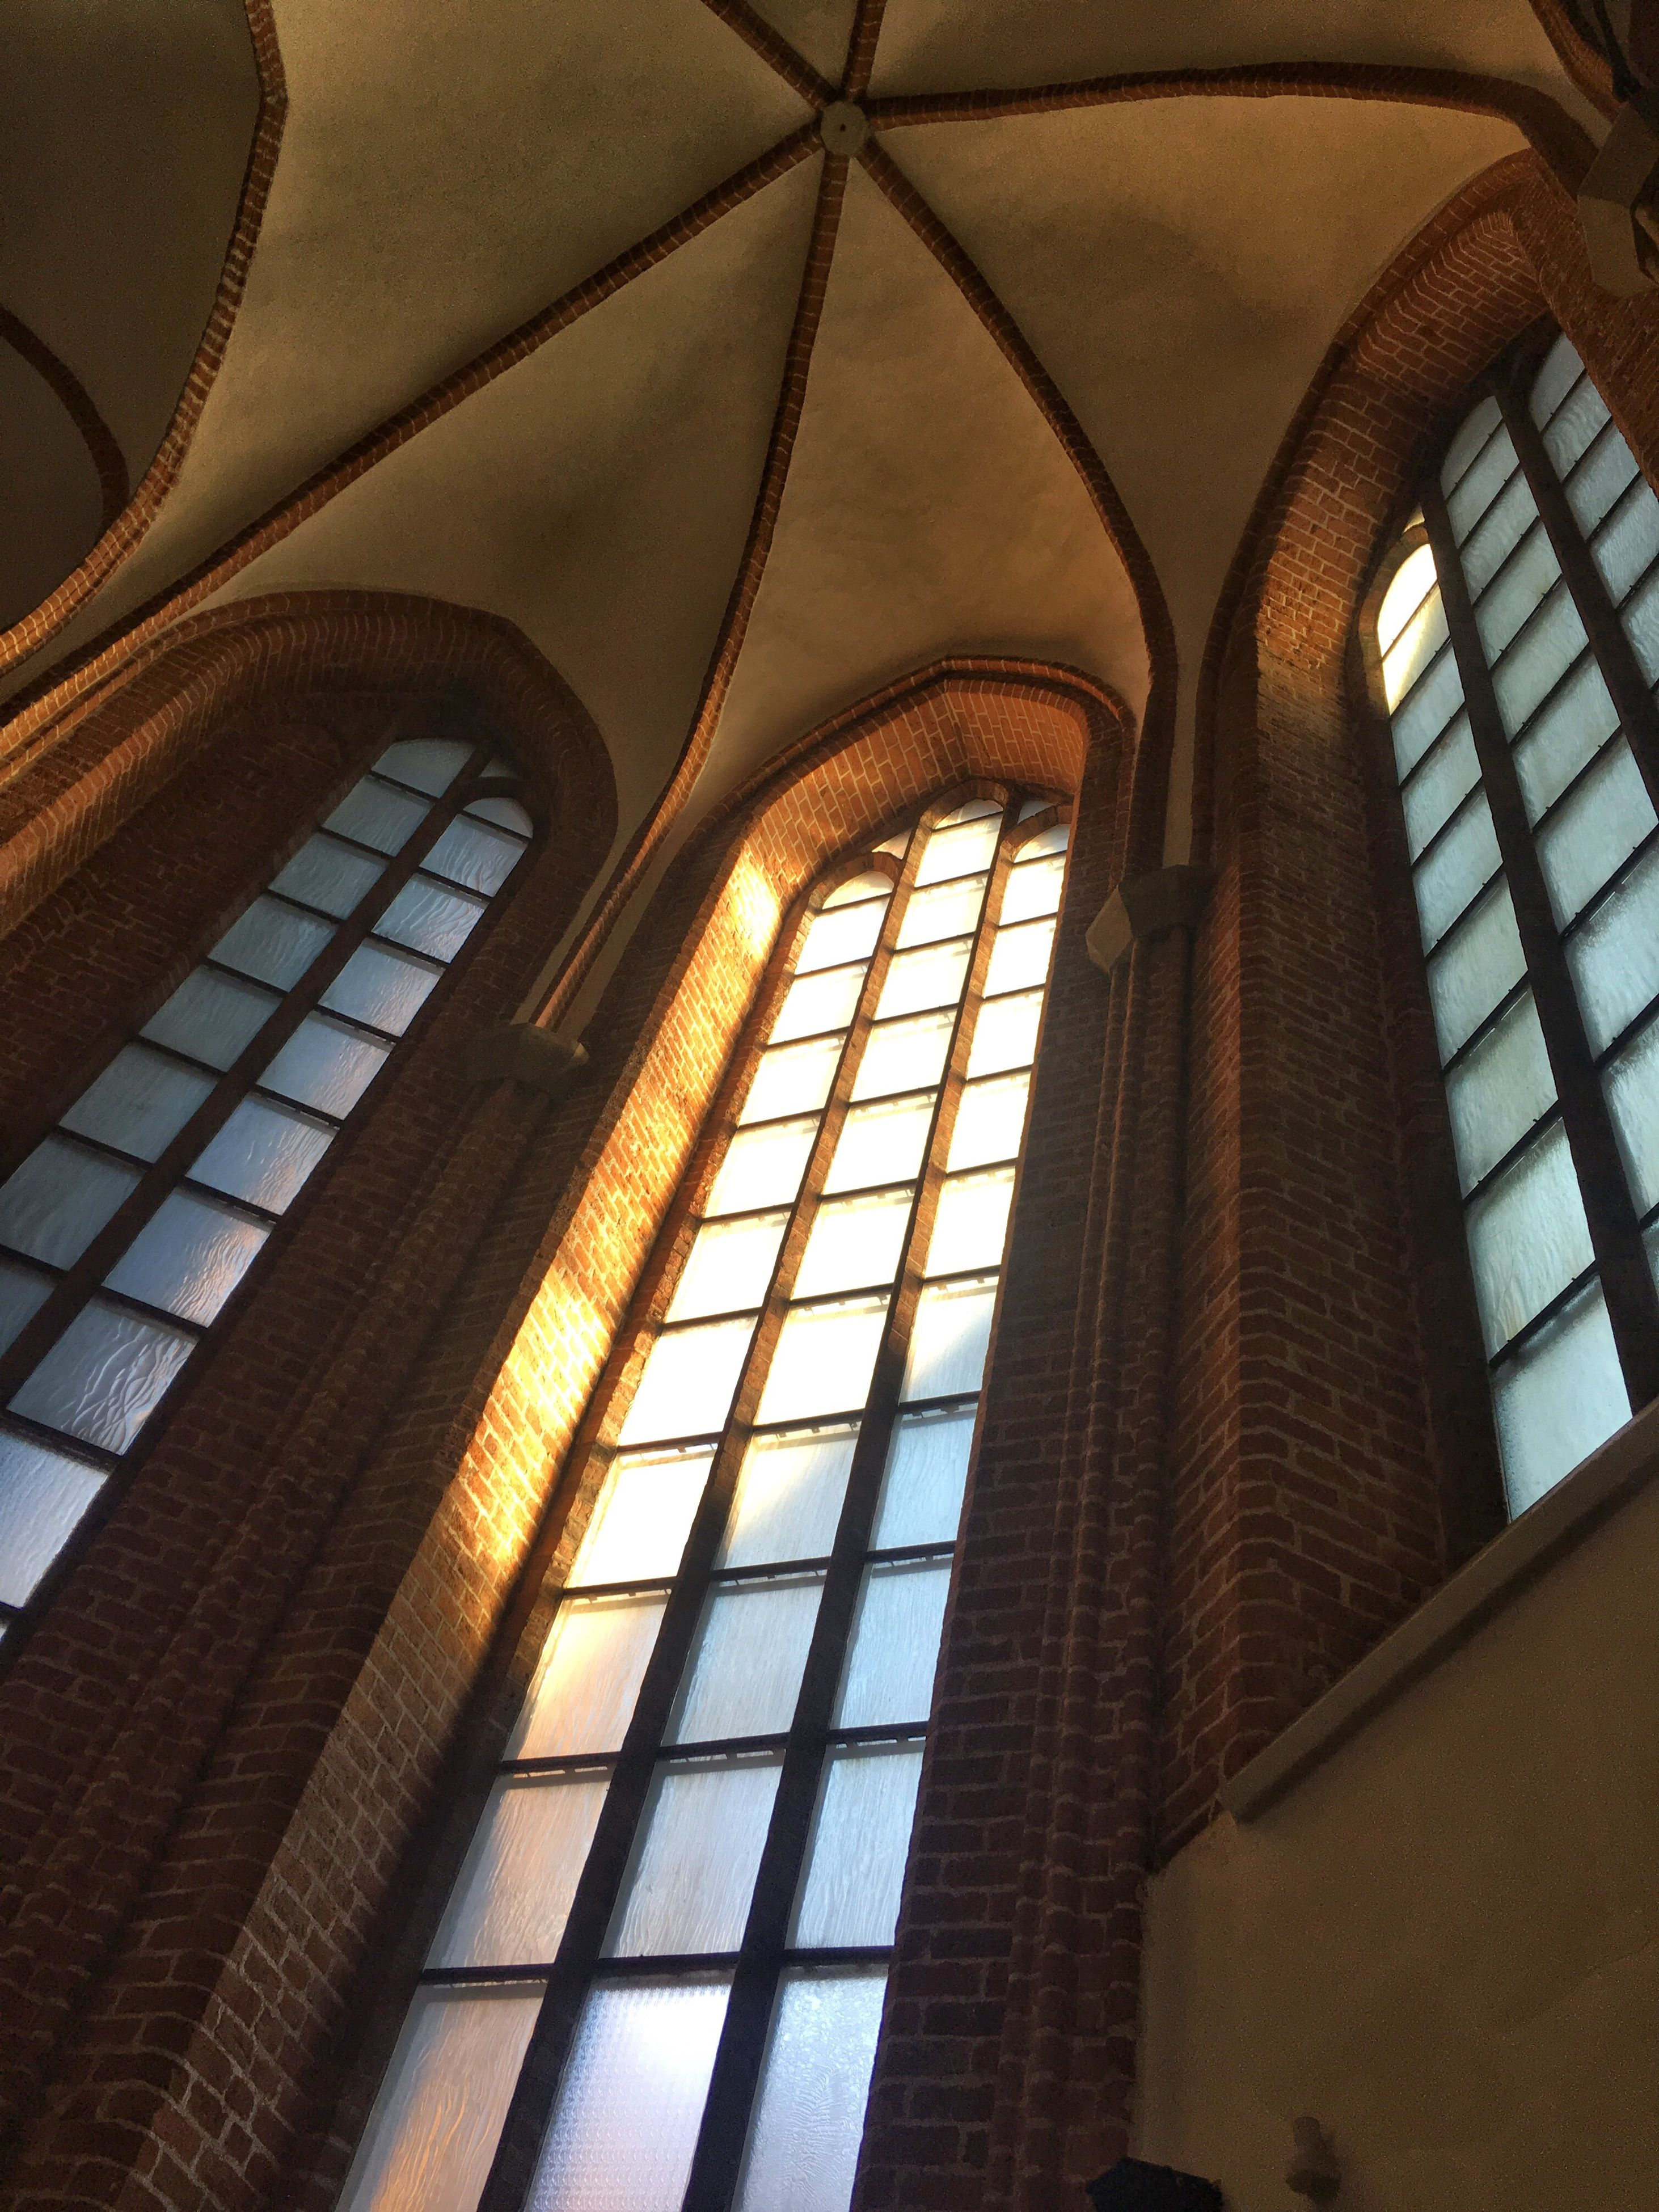 no people, pattern, low angle view, indoors, architecture, day